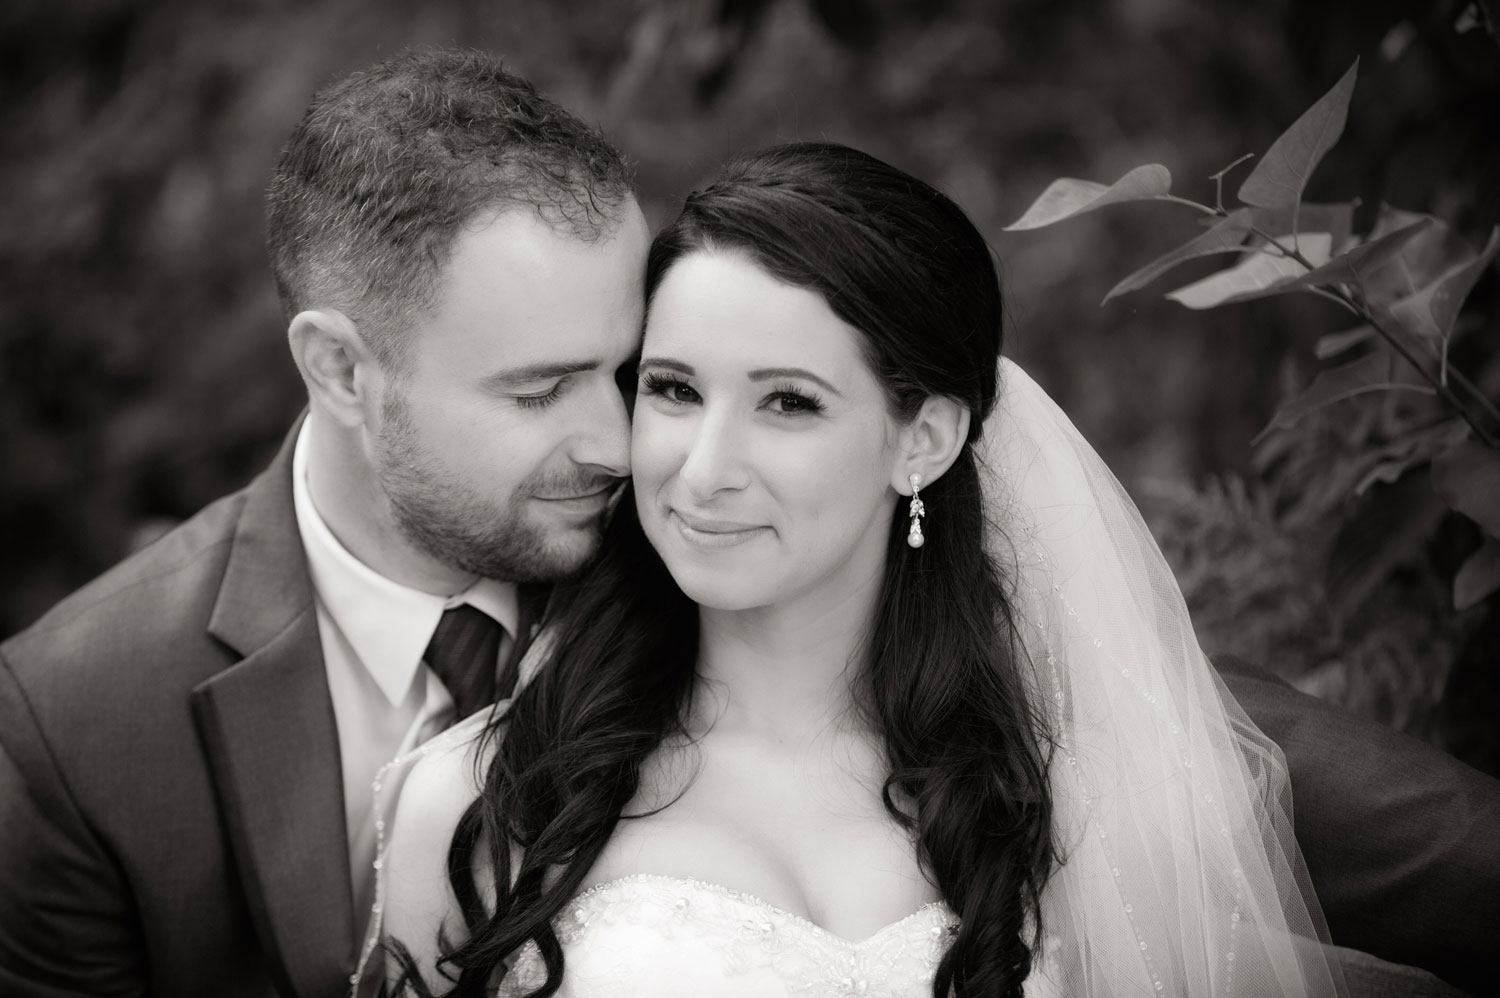 Nicole & Mike at their Coal Harbour Community Centre Wedding | Image by Randal Kurt Photography